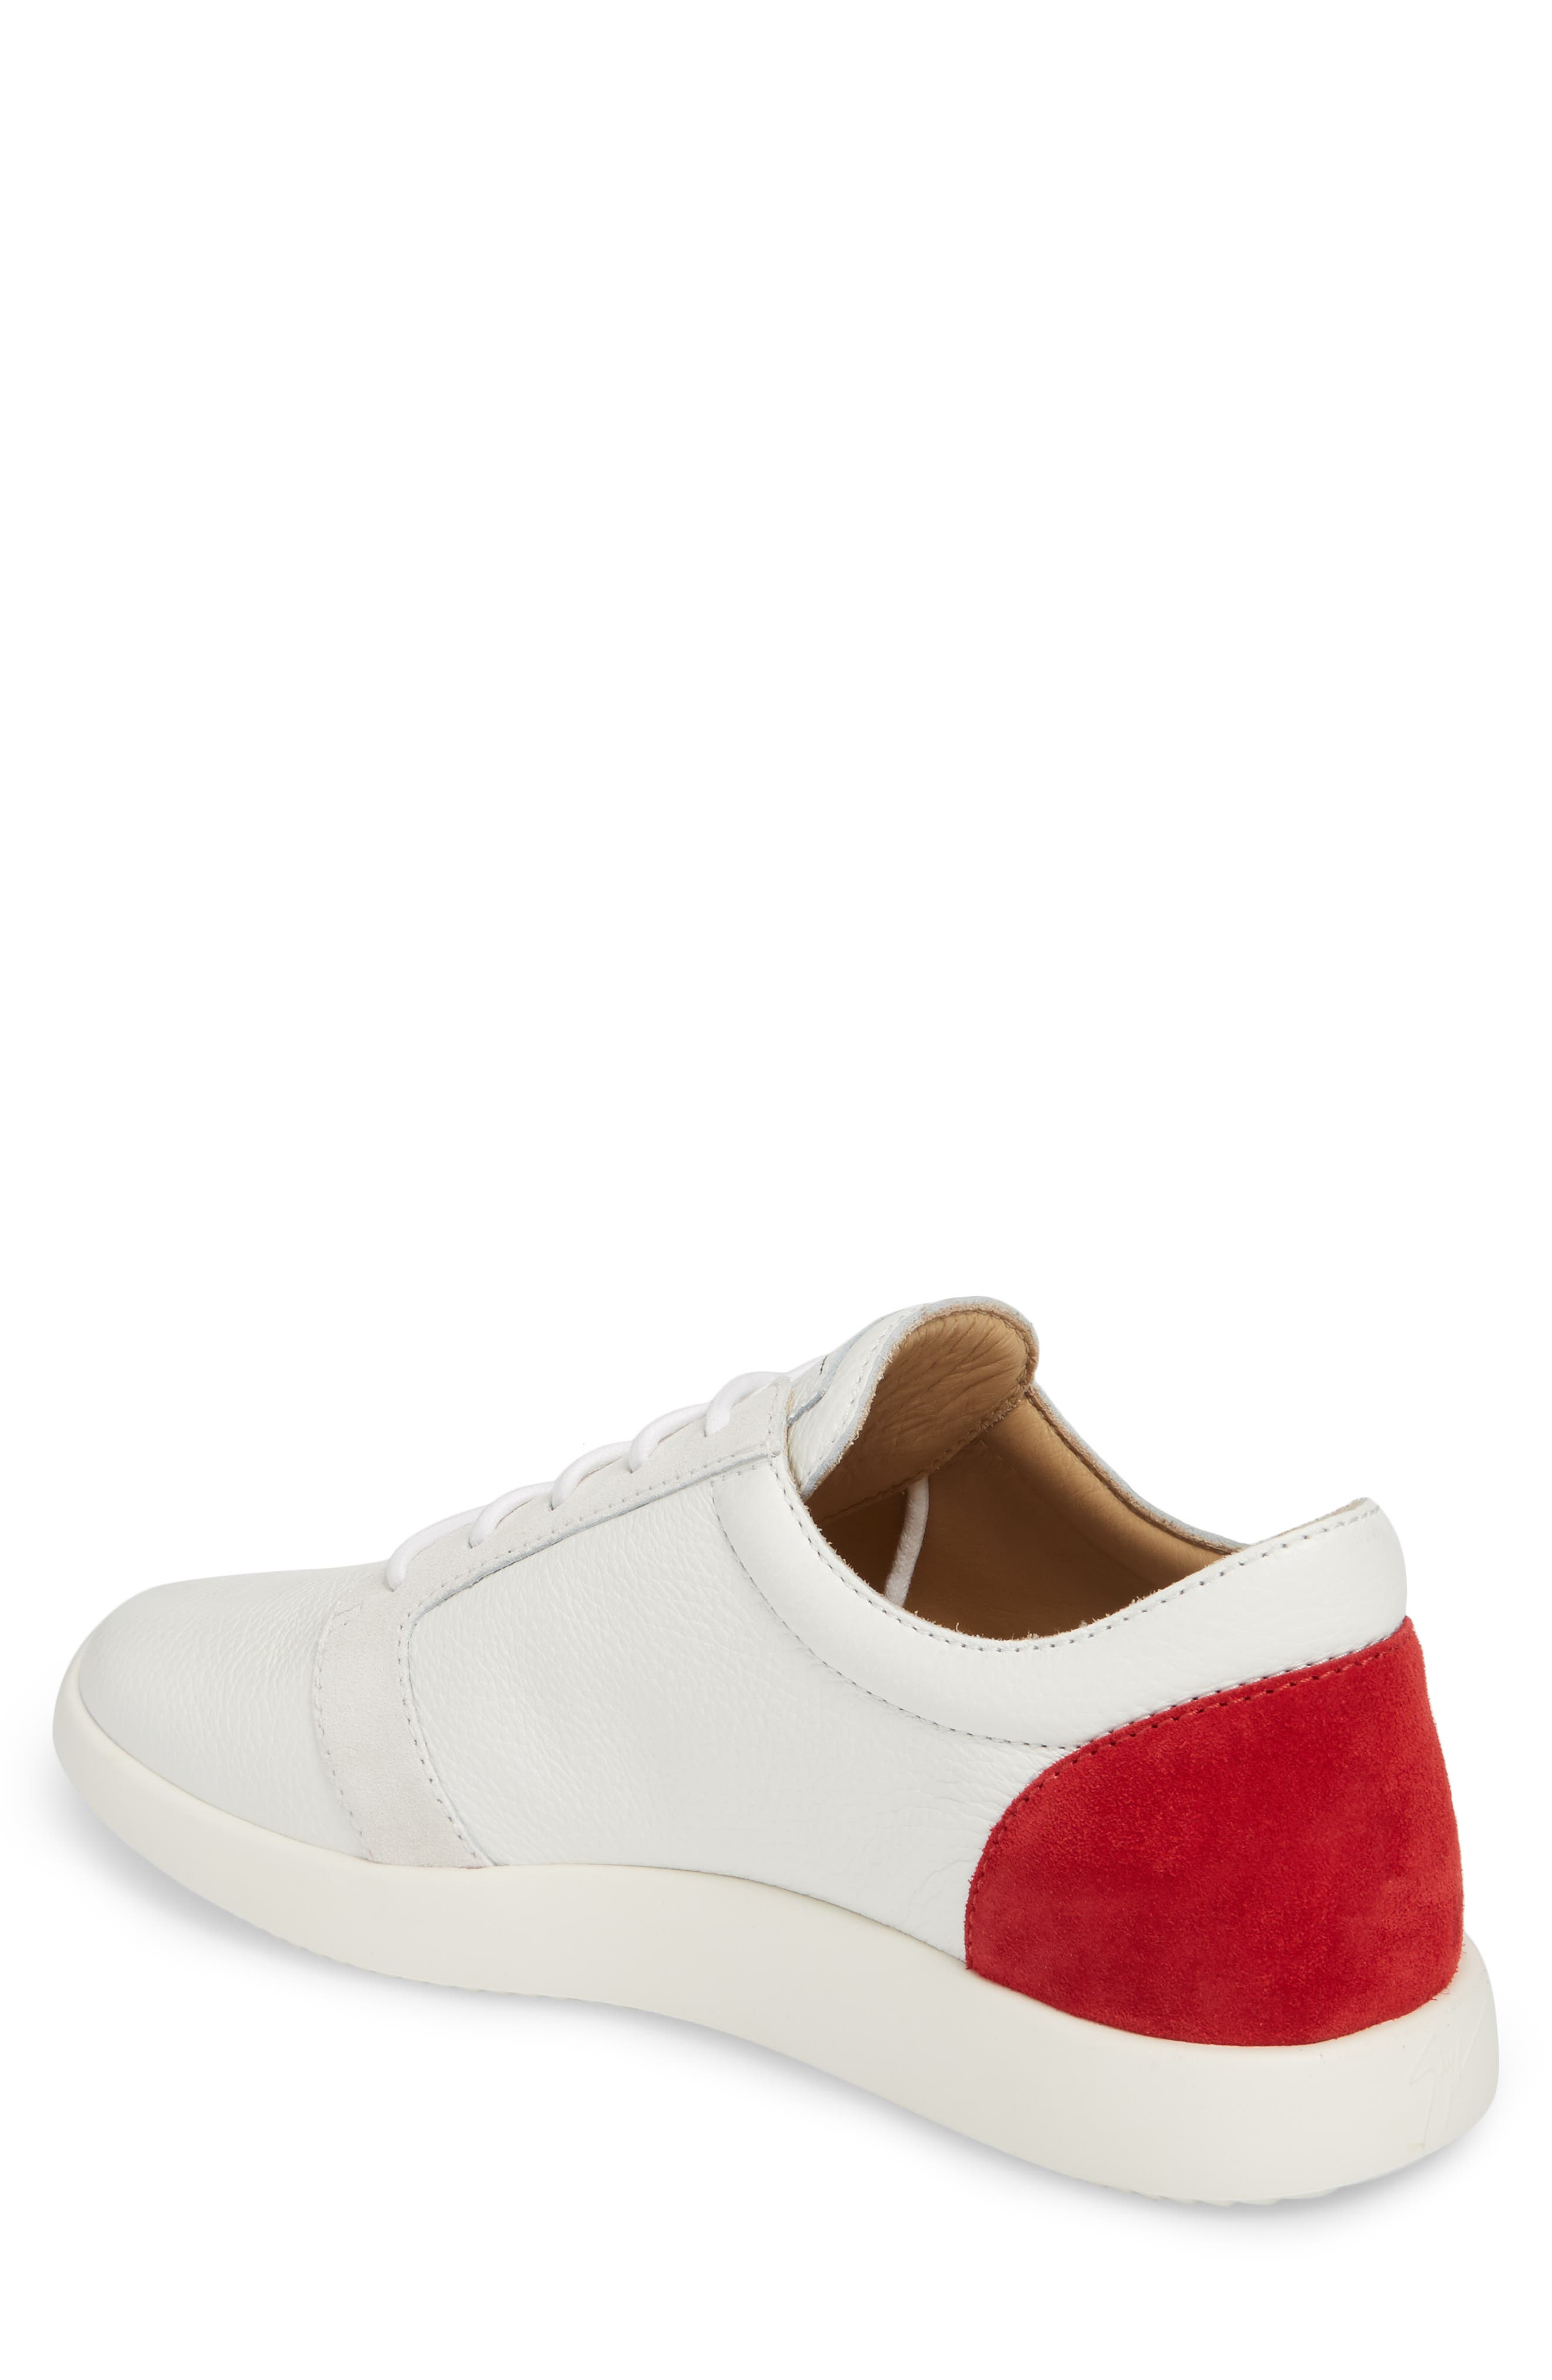 Signature Sneaker,                             Alternate thumbnail 2, color,                             White W/ Red Counter